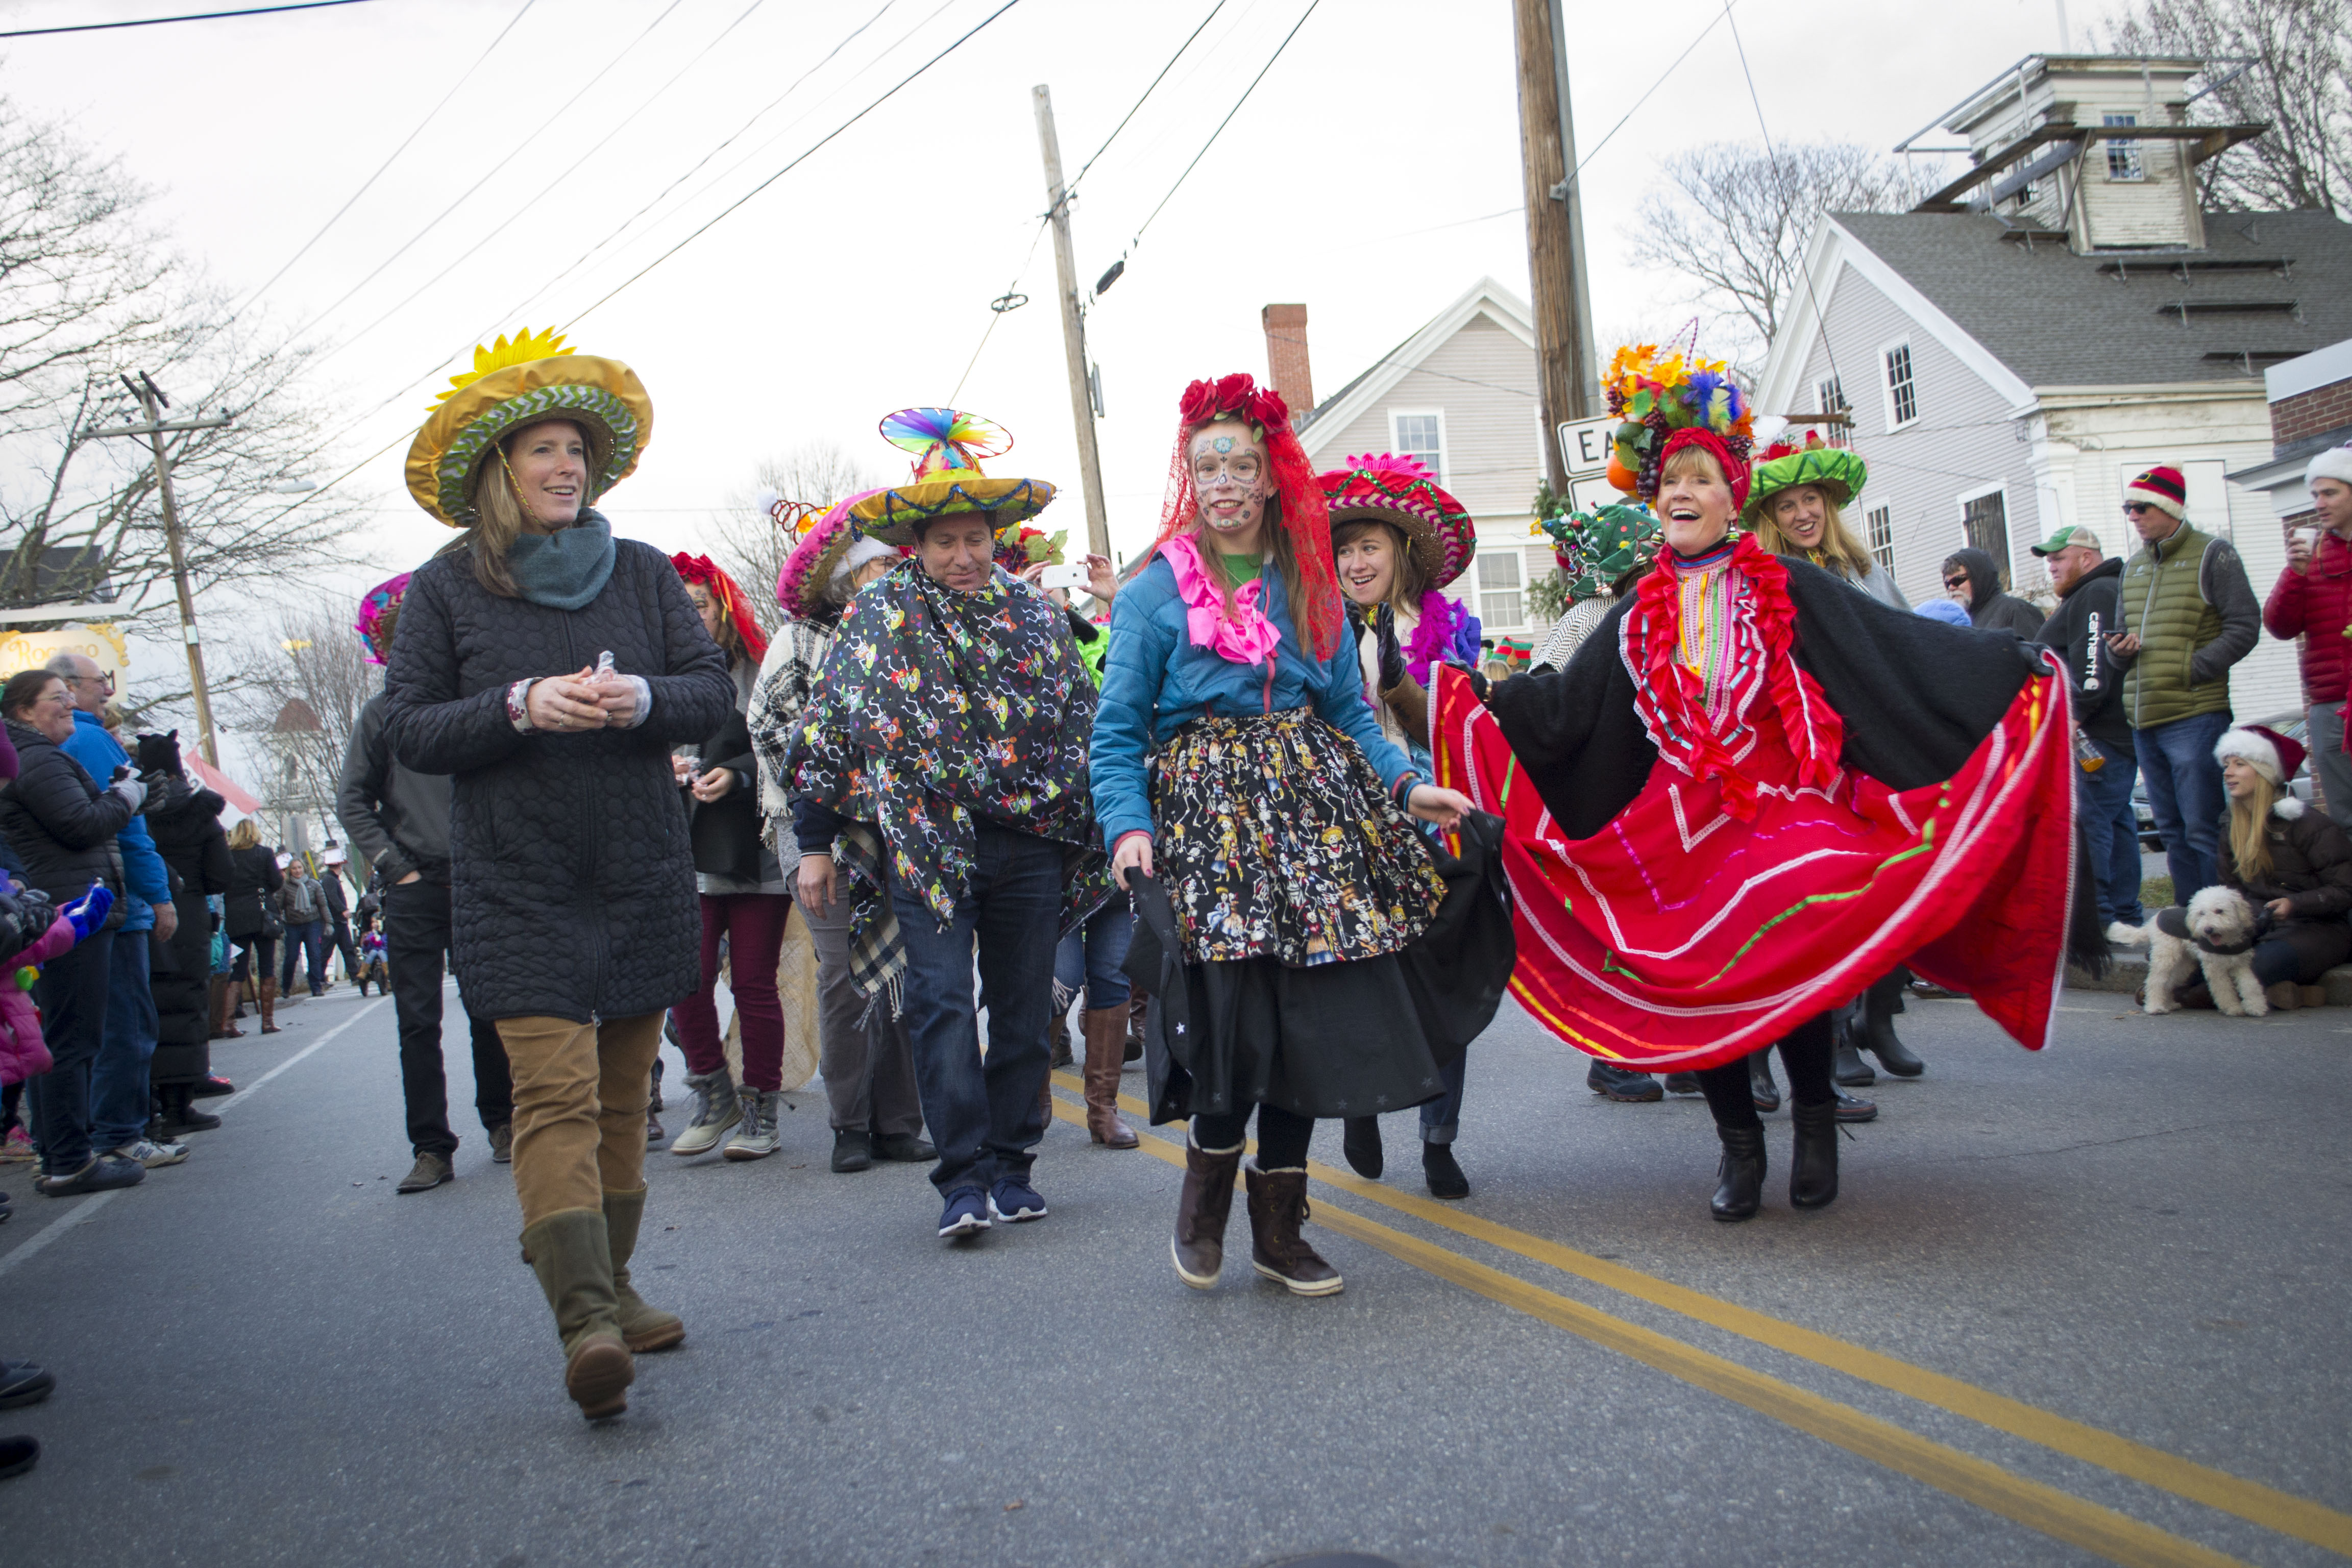 ALAN BENNETT/Journal Tribune. Marchers celebrate the holiday season by taking part in the 11th annual Hat Parade during Kennebunkport's 35th Christmas Prelude on Saturday.